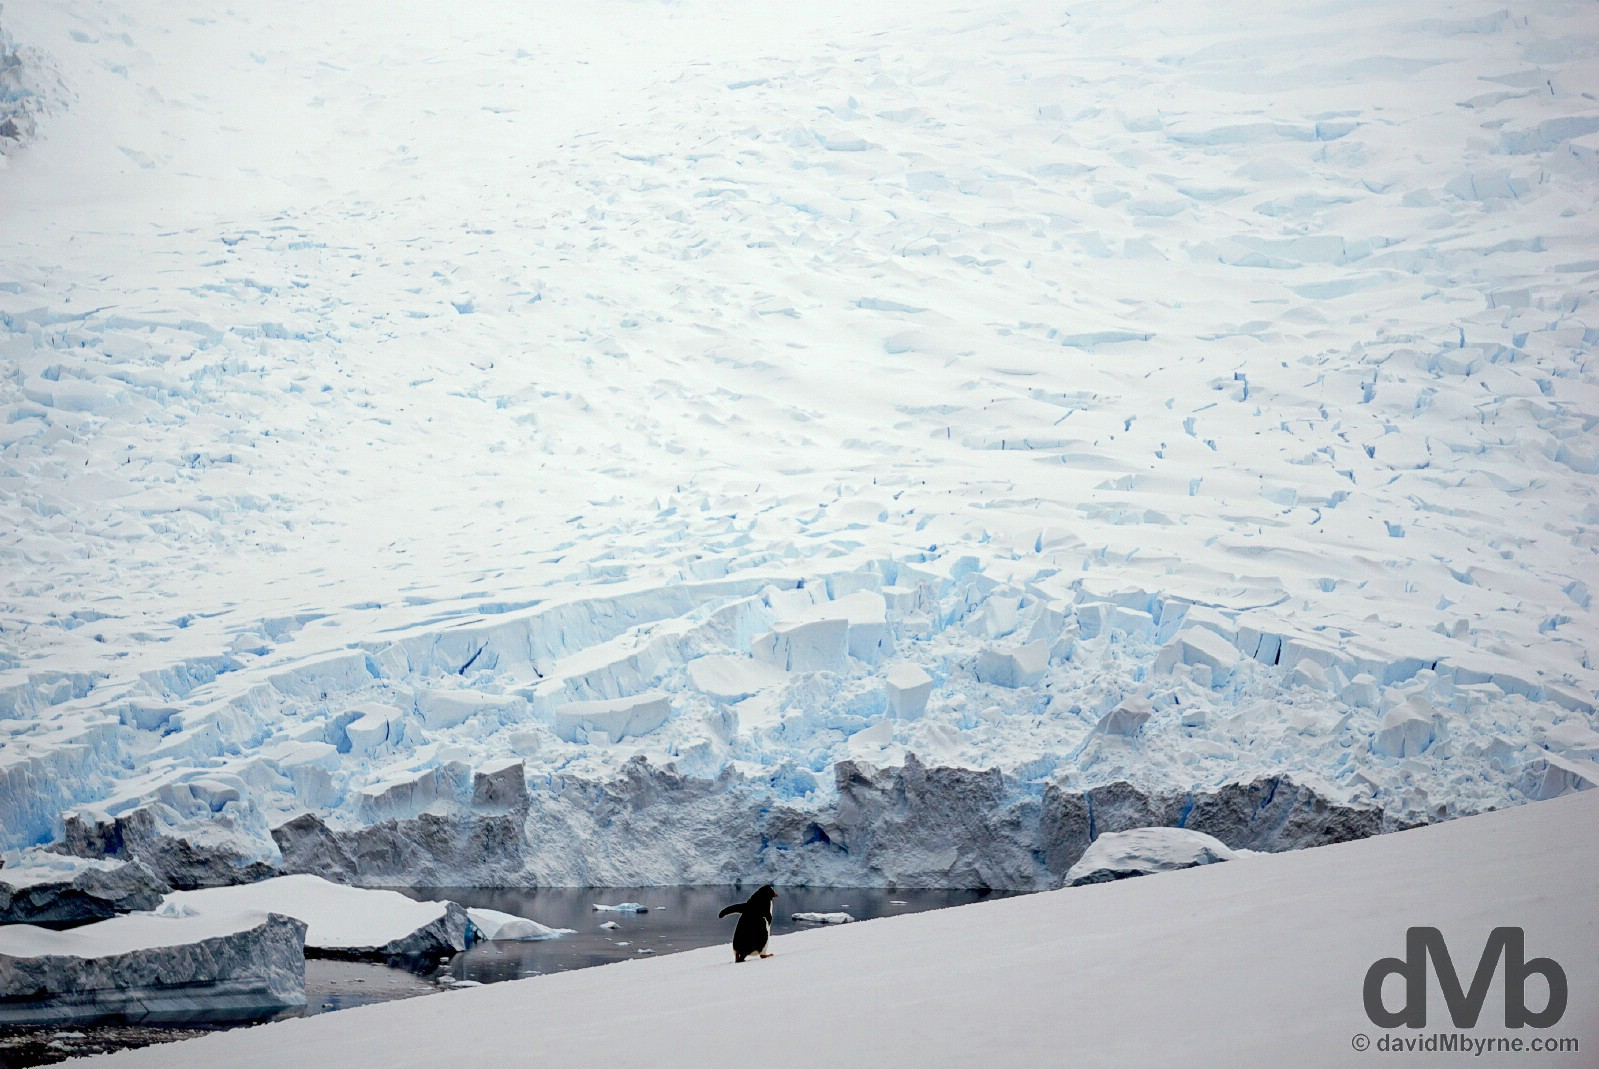 A lone gentoo penguin heading uphill set against the massive glaciers off Danco Island, Antarctica. December 2, 2015.